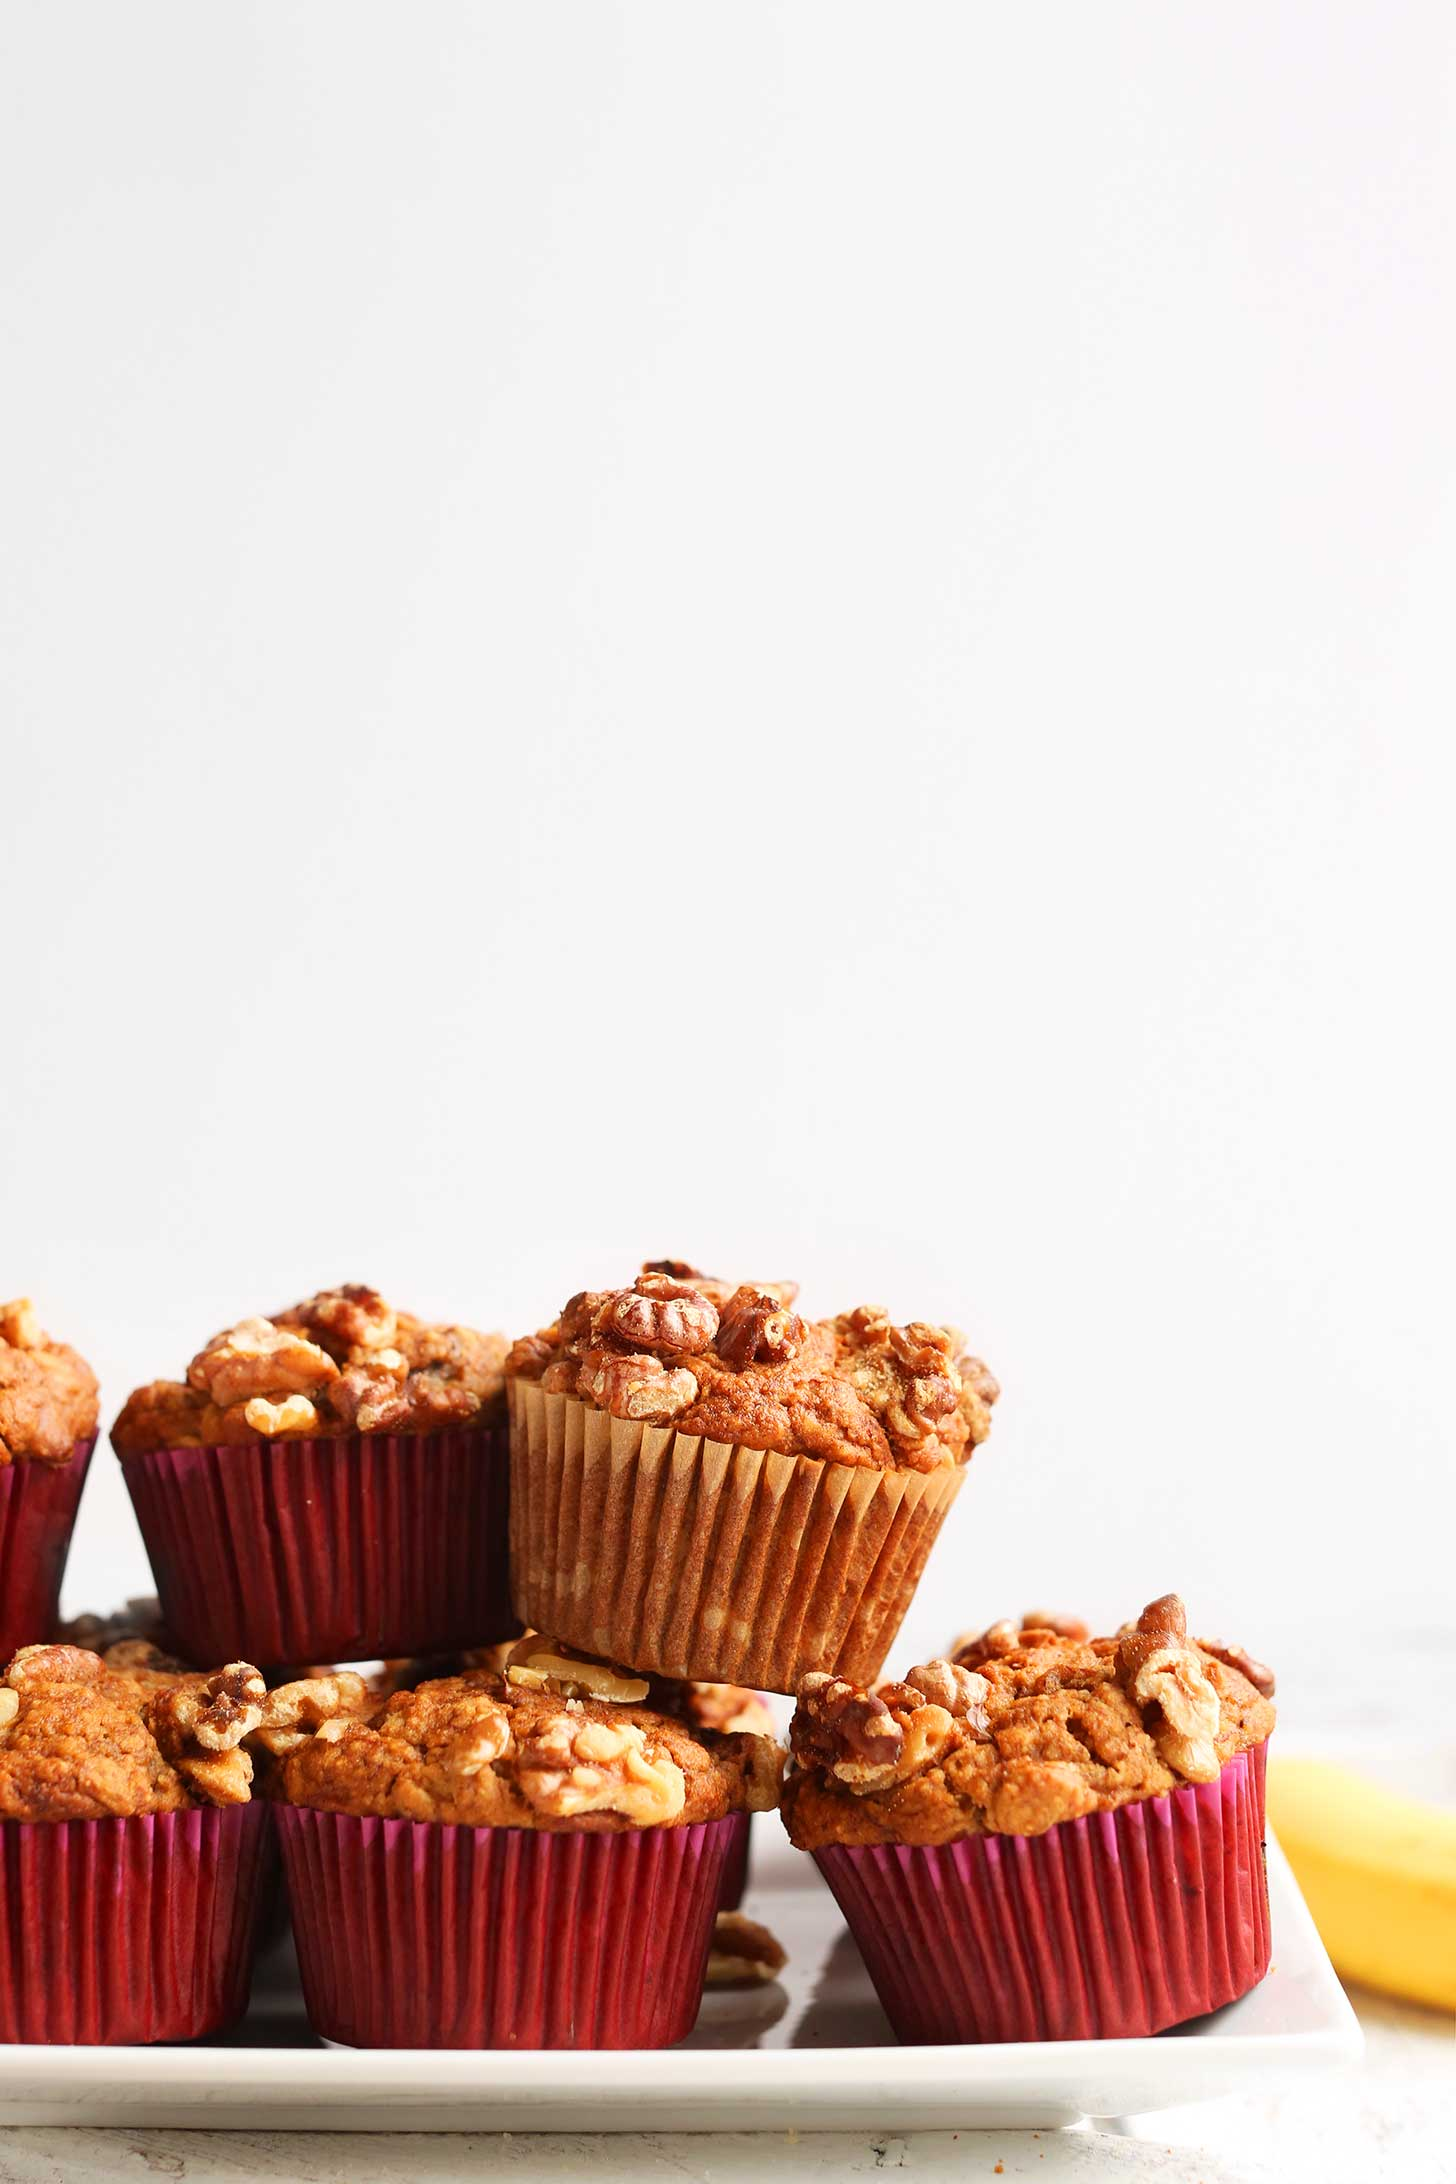 Easy nut muffin recipes